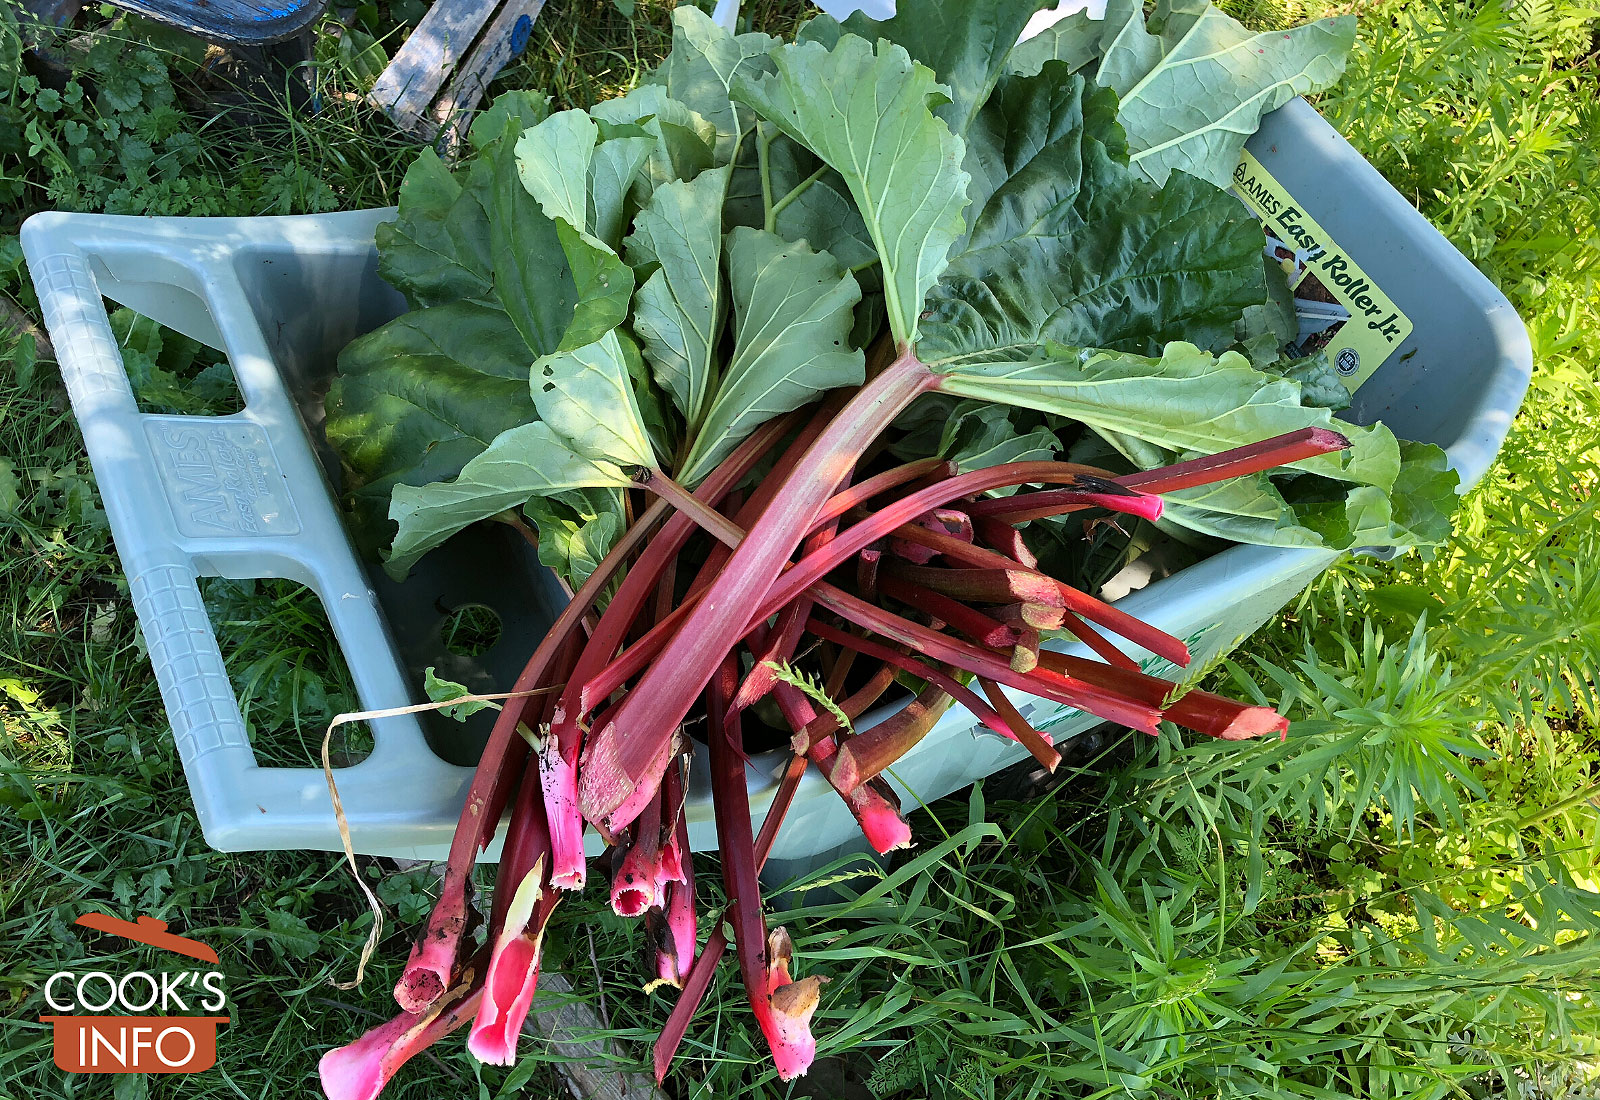 Harvested rhubarb in garden cart